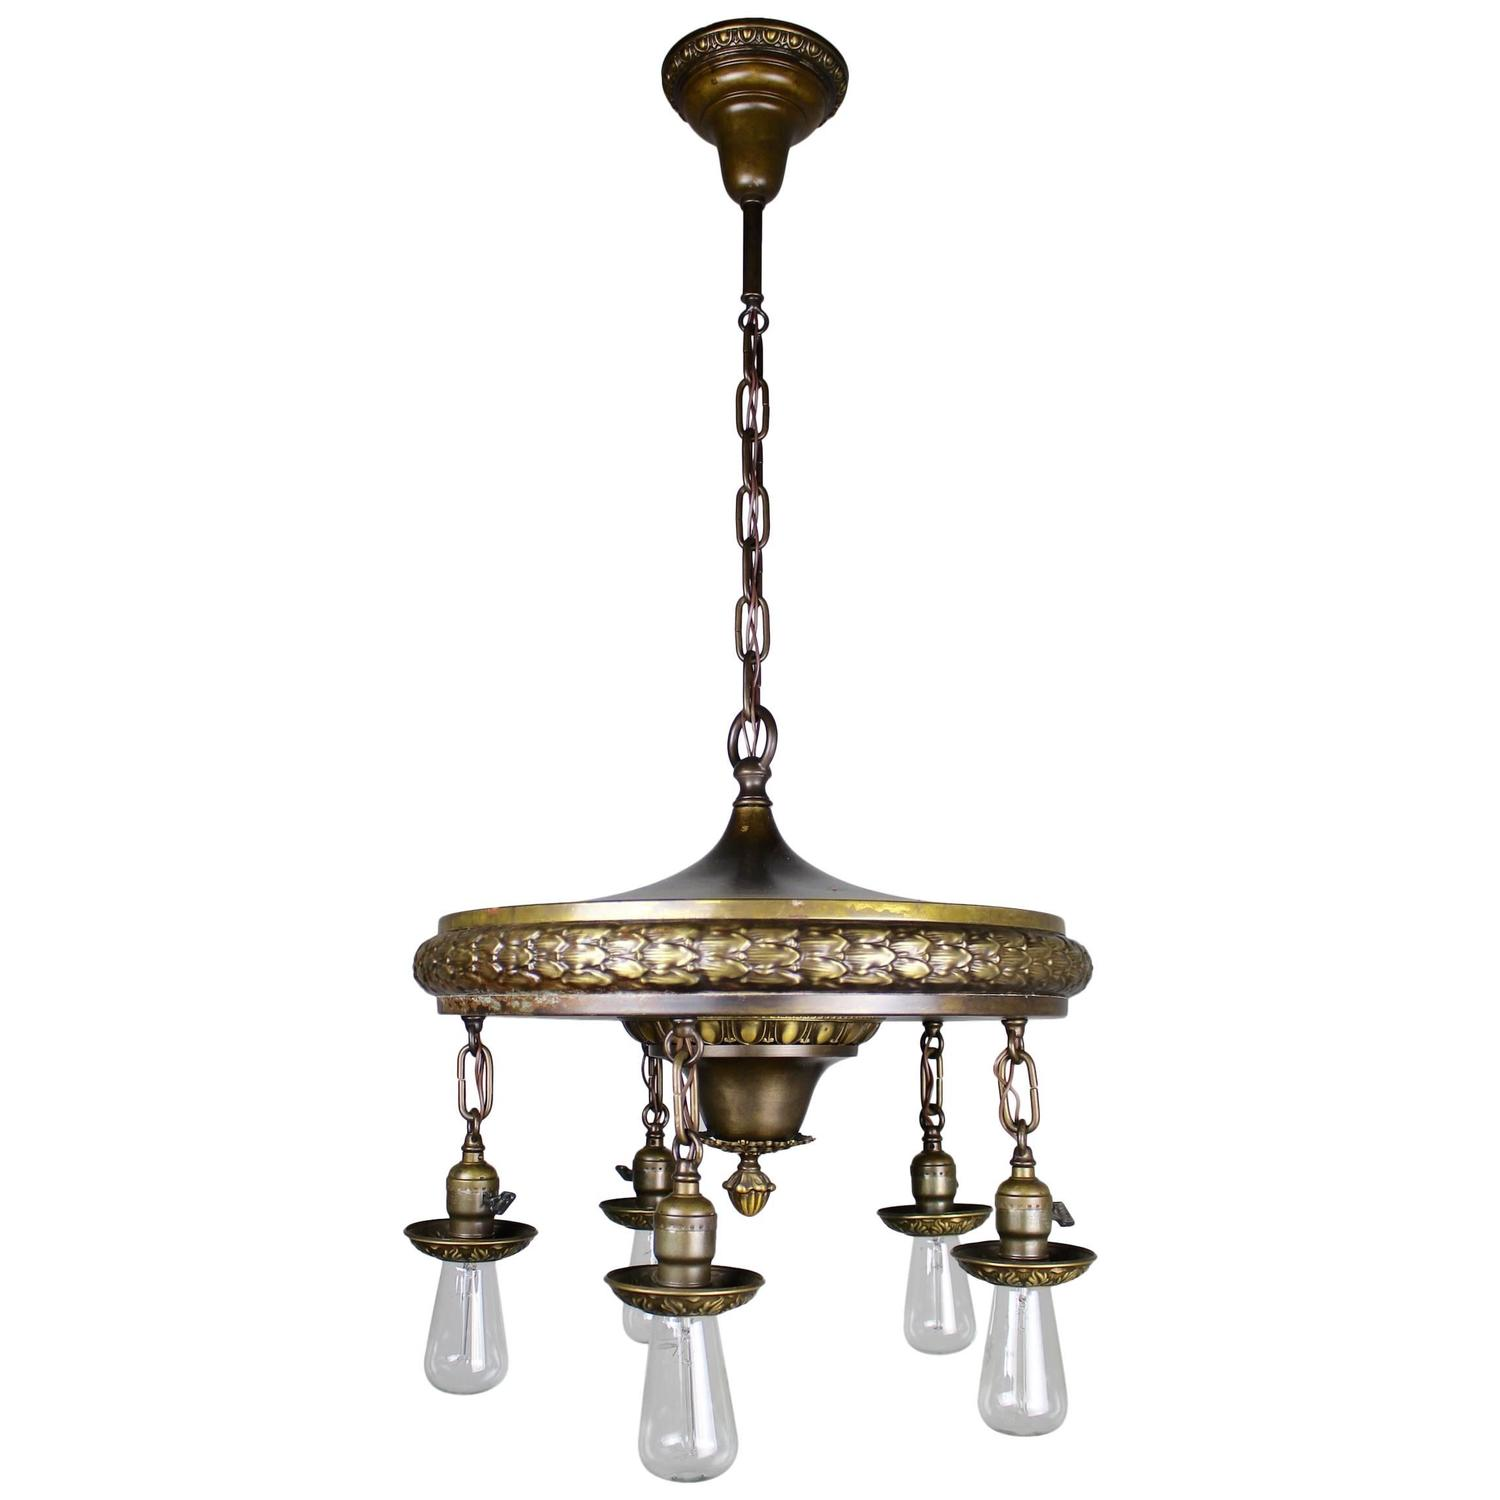 1920s five light neoclassical revival dining room fixture for sale at